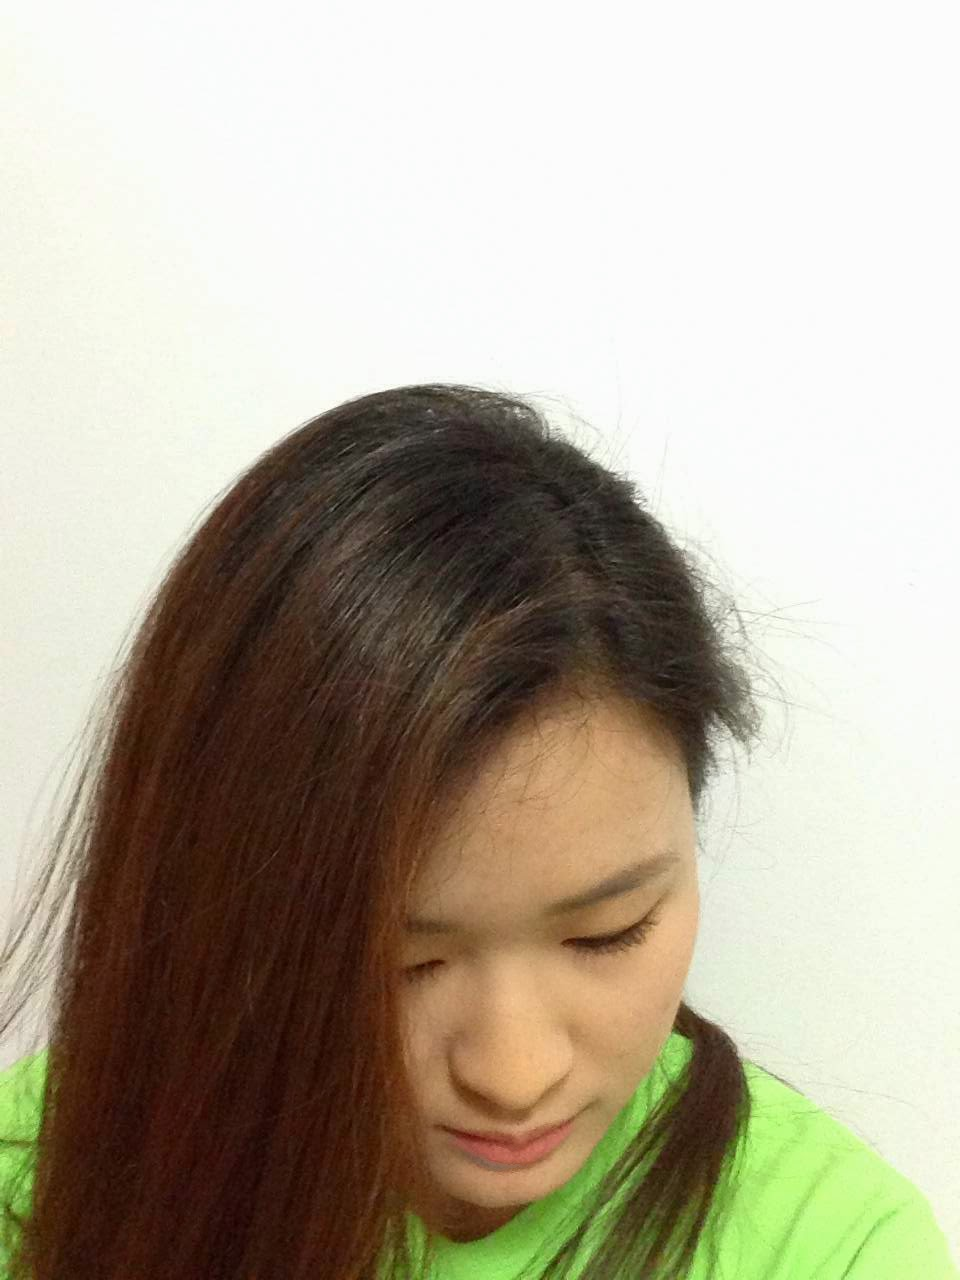 Endee Palty Hair Dye In Honey Brown Review And How To